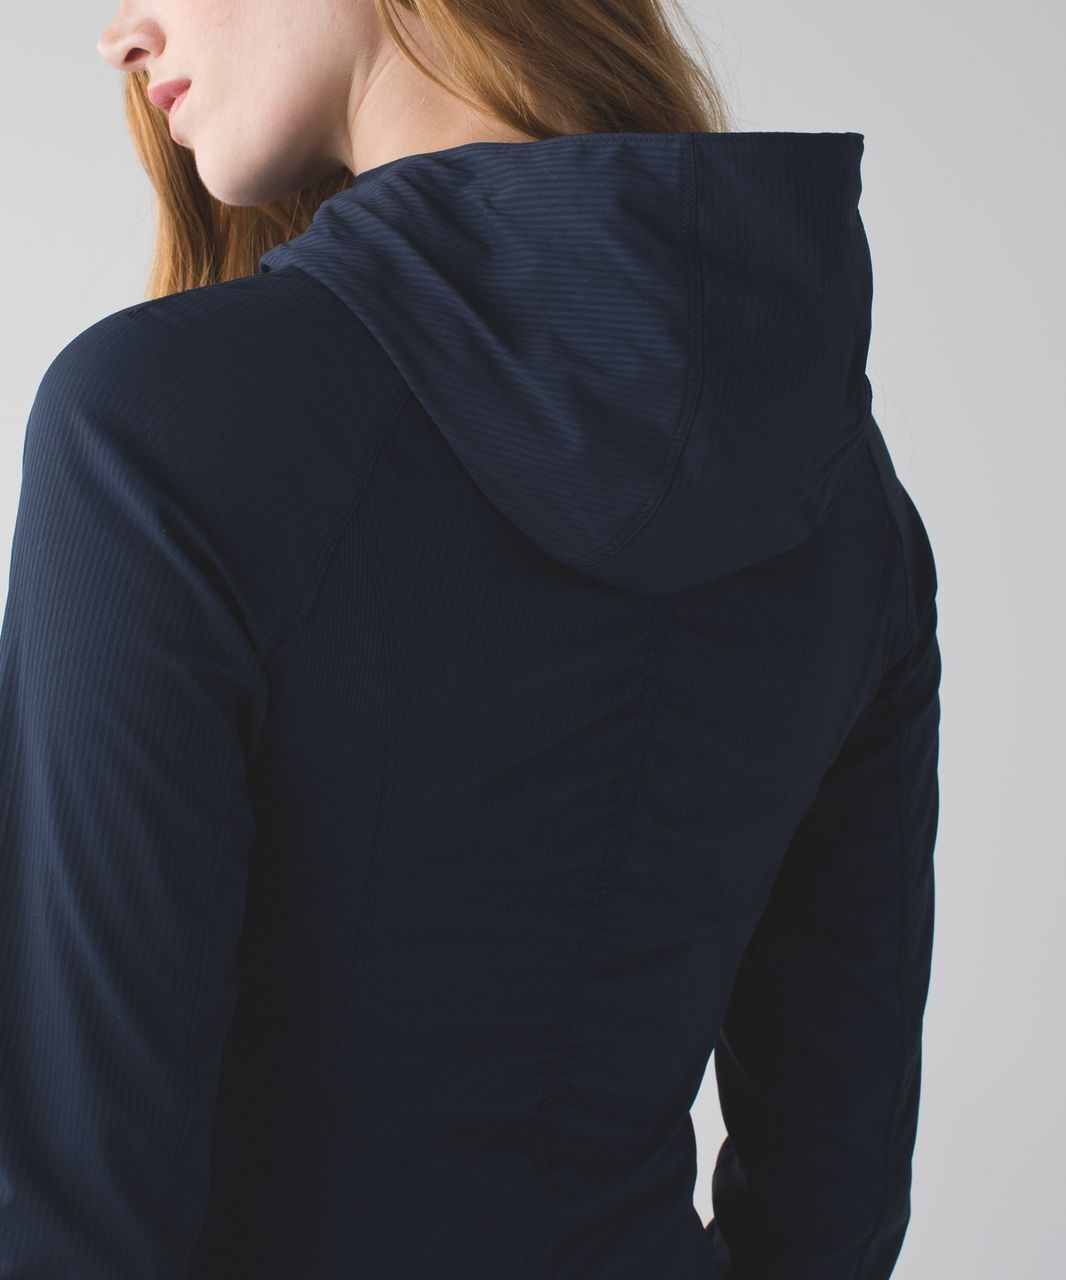 Lululemon In Flux Jacket - Inkwell